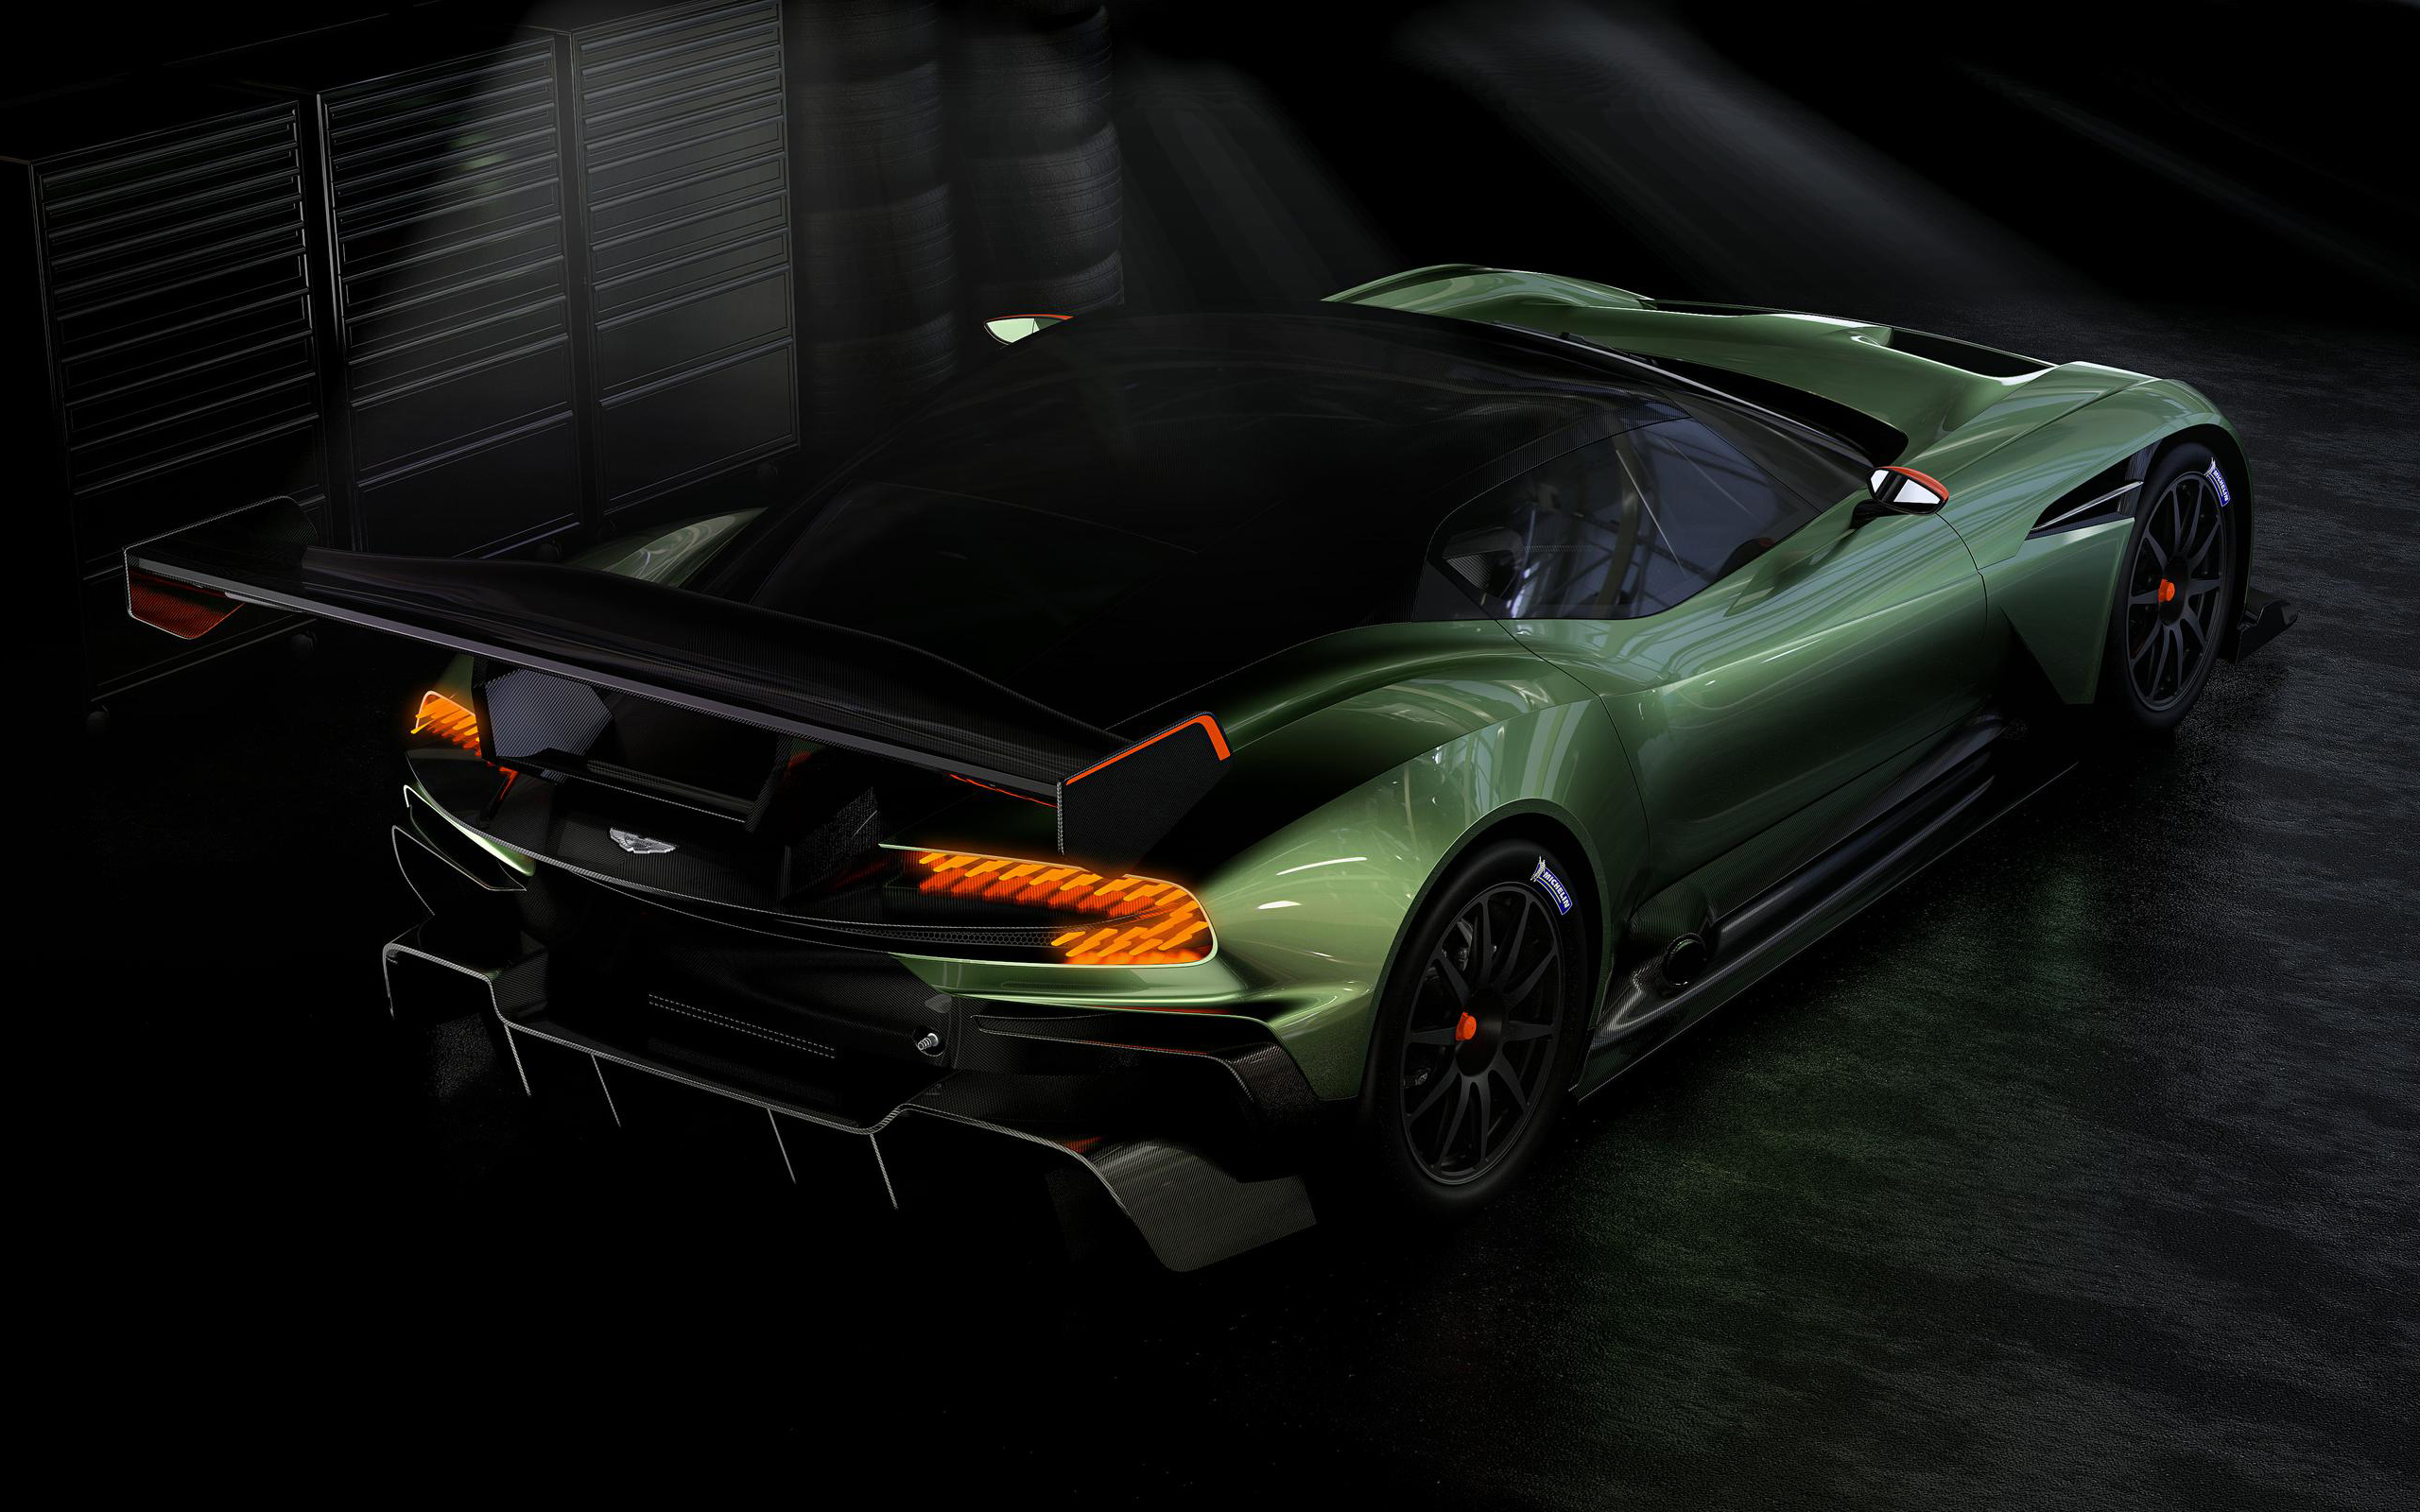 2015 aston martin vulcan rear view wallpaper 47505